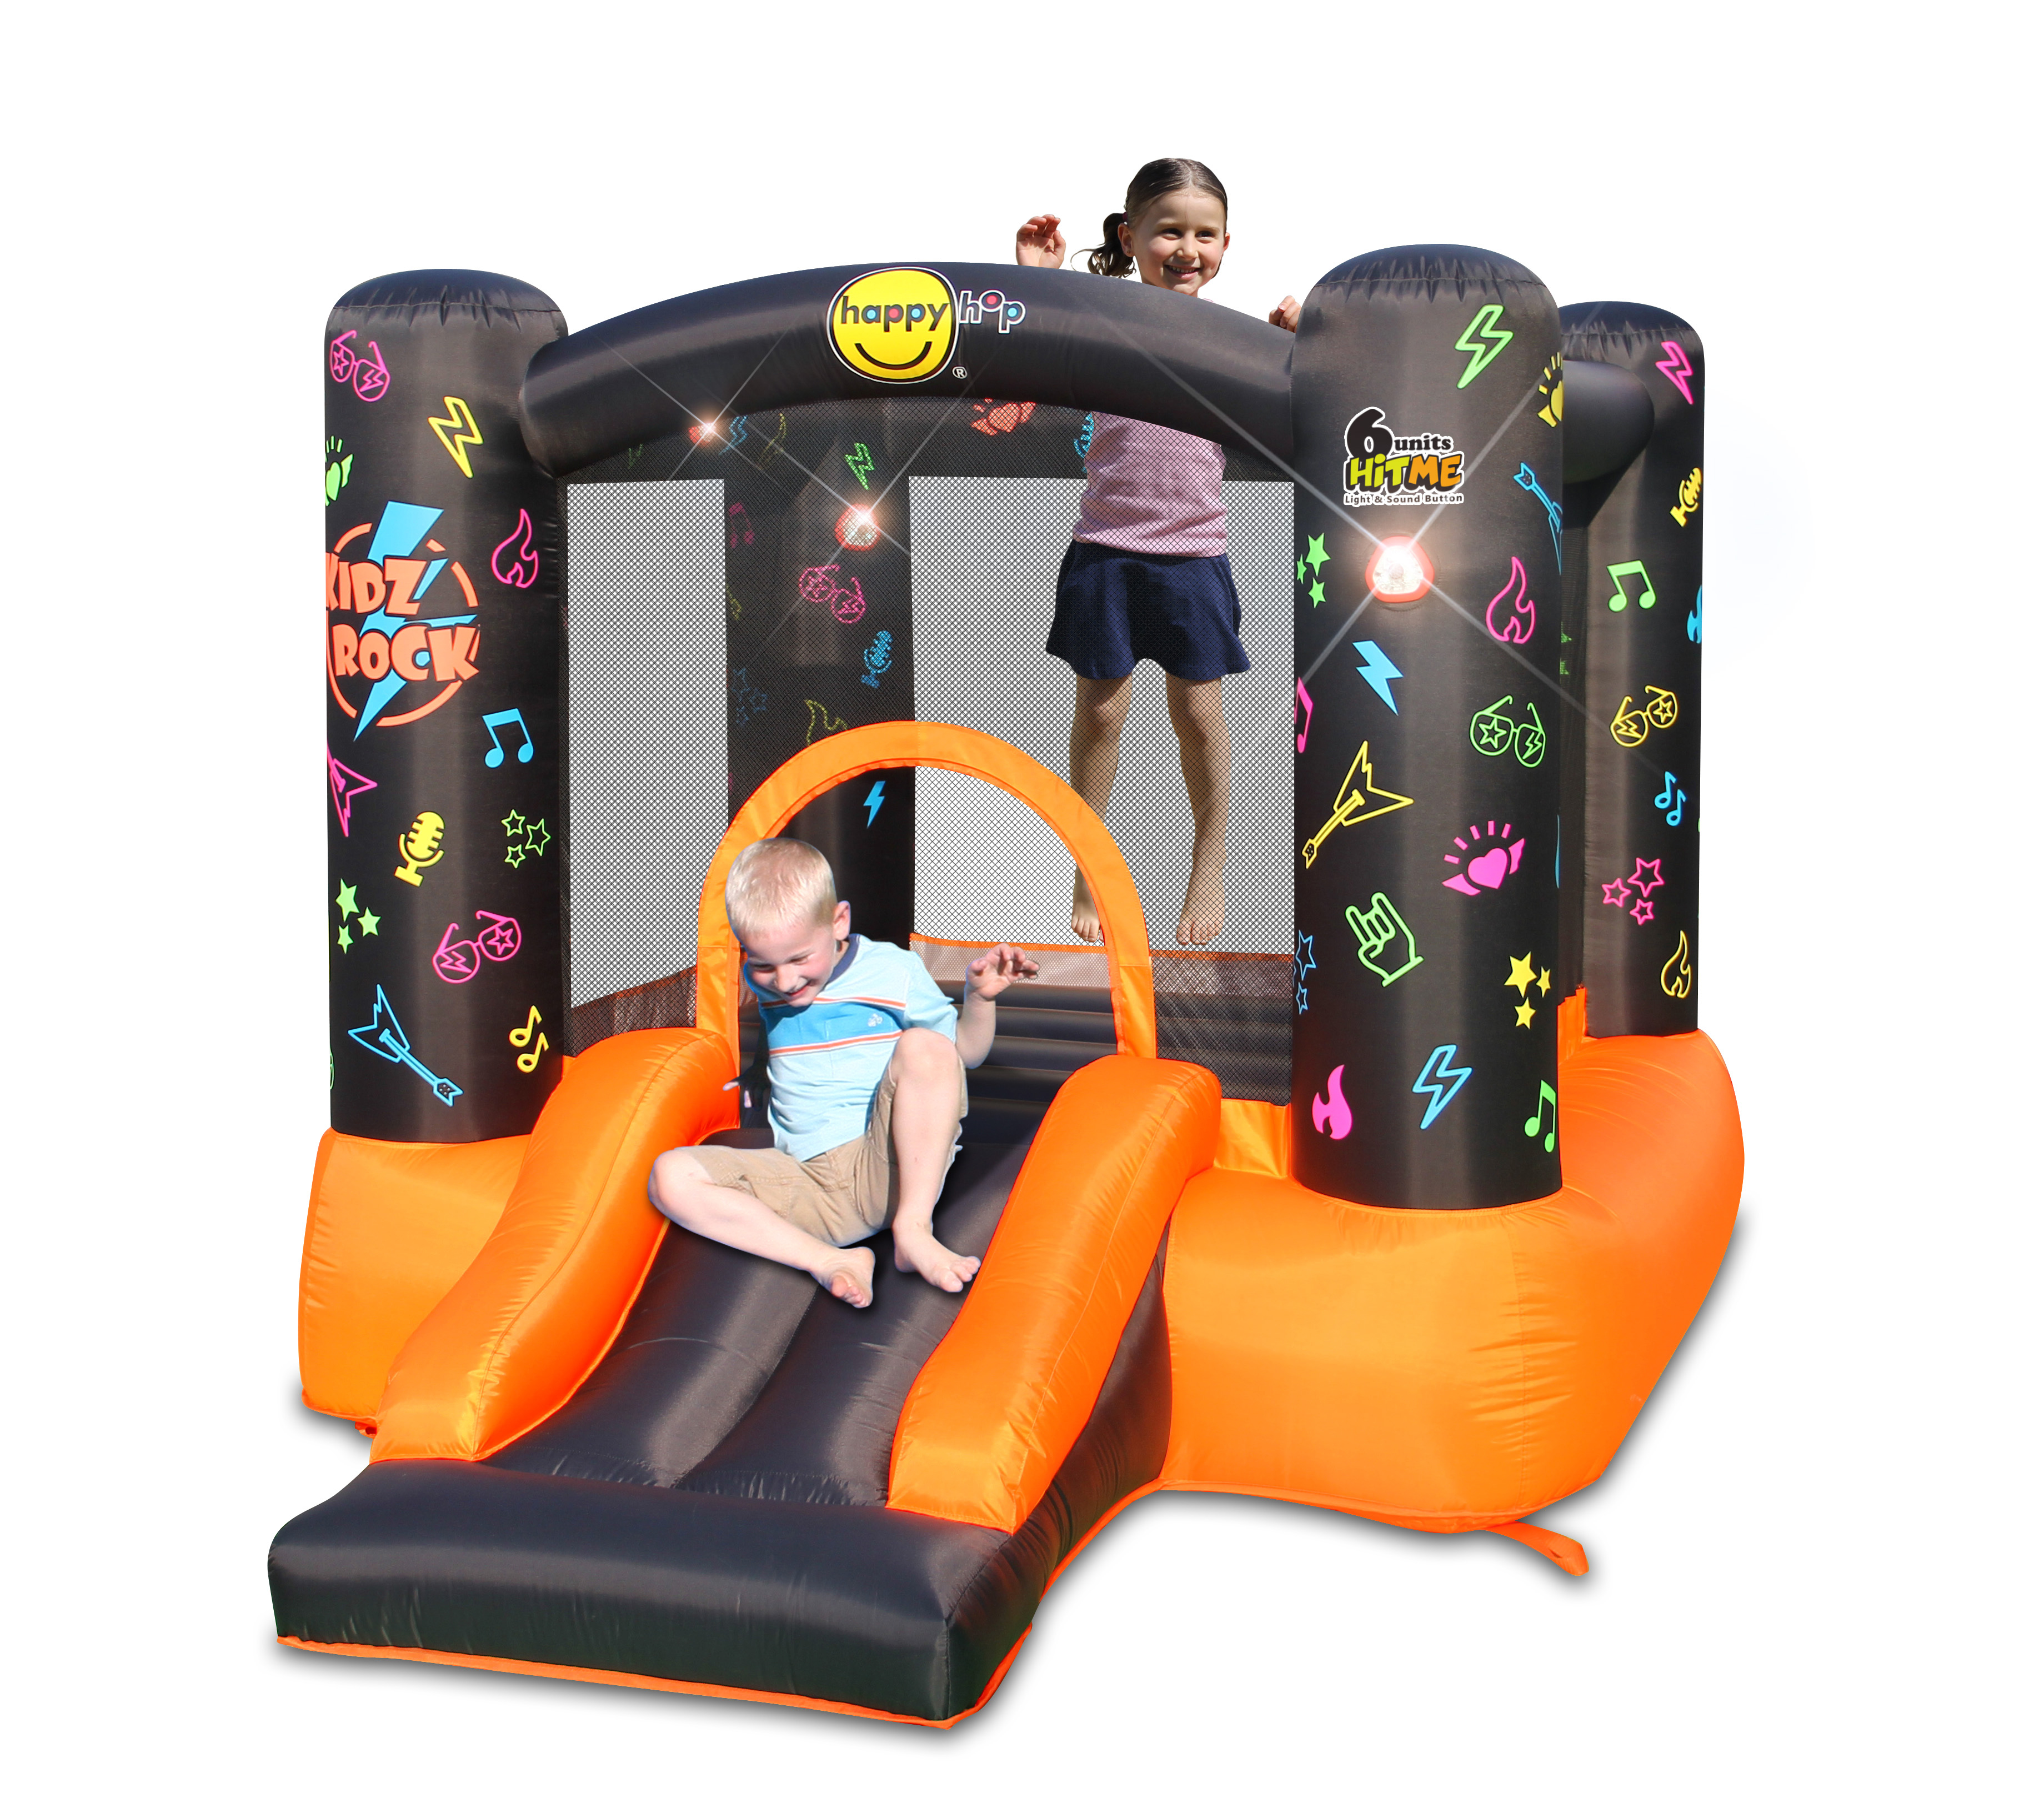 Bounce House - Kidz Rock Bounce House with Lights and Sound interaction 2